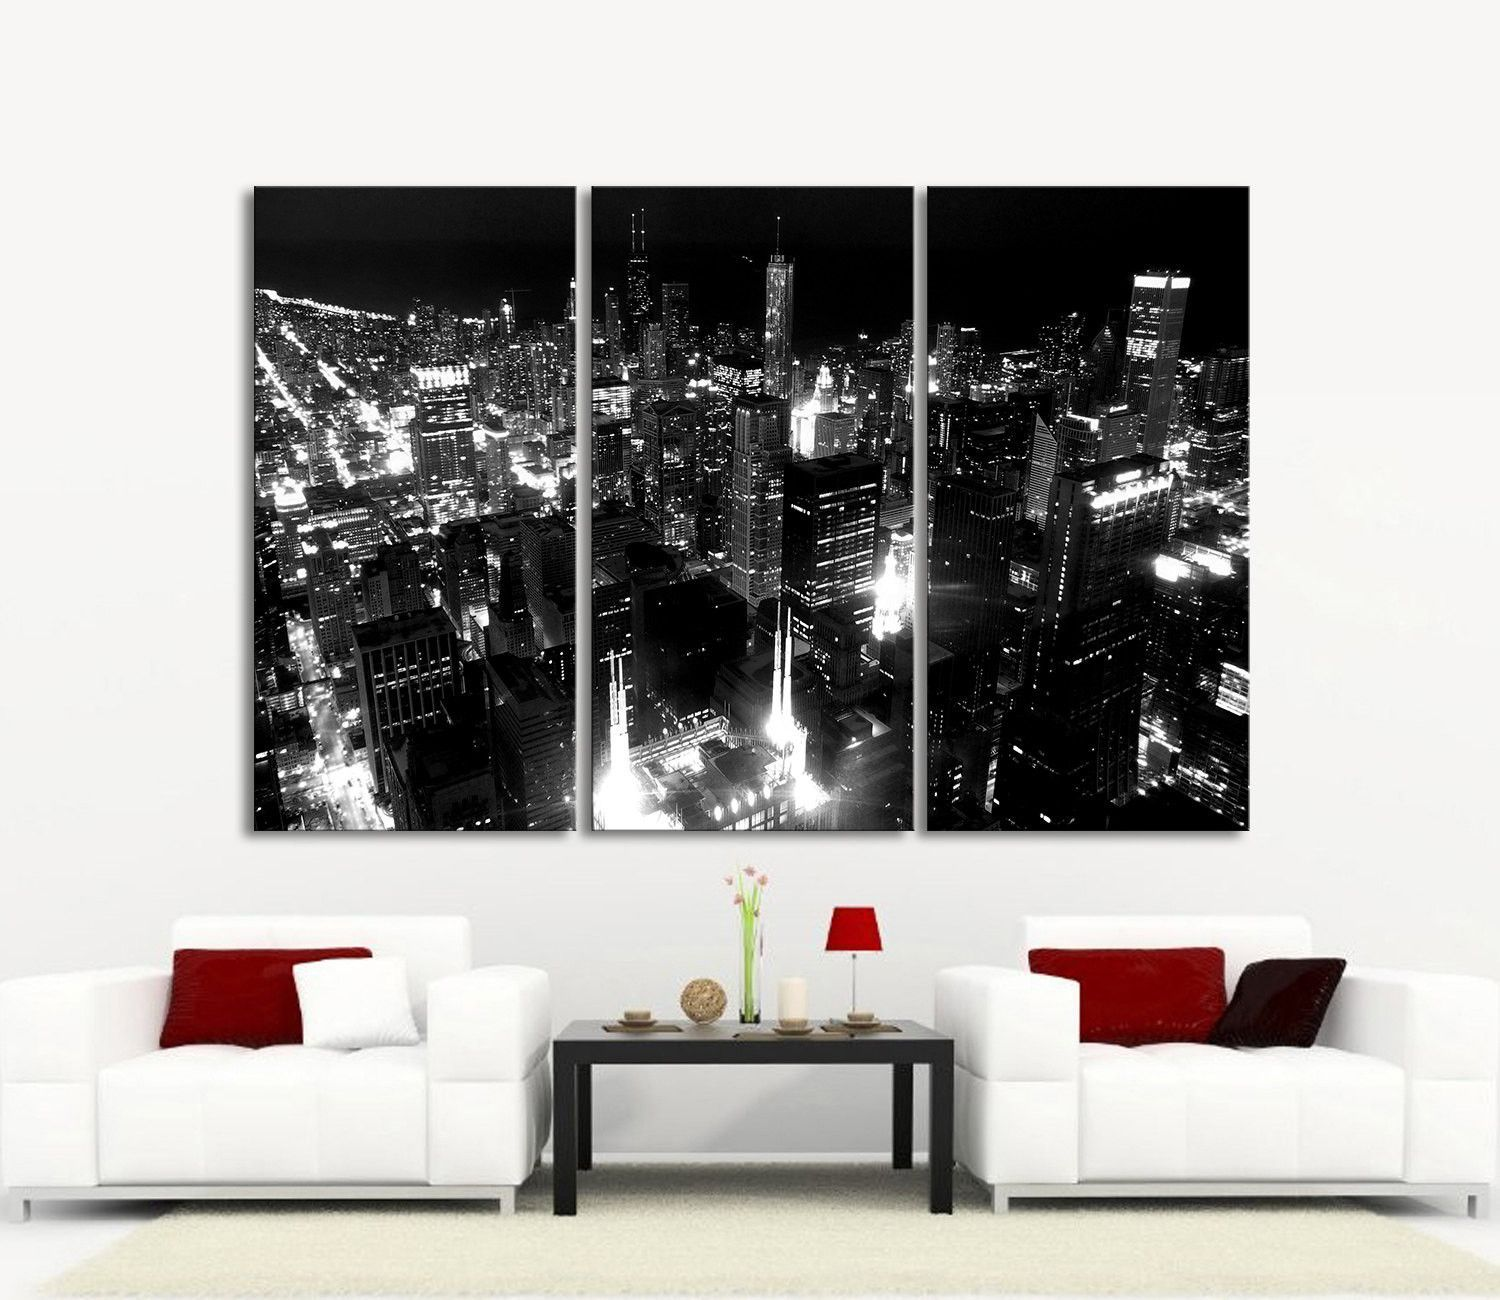 3 Panel Wall Art Endearing Large Wall Art Canvas Print Chicago City Skyline At Night  3 Design Ideas